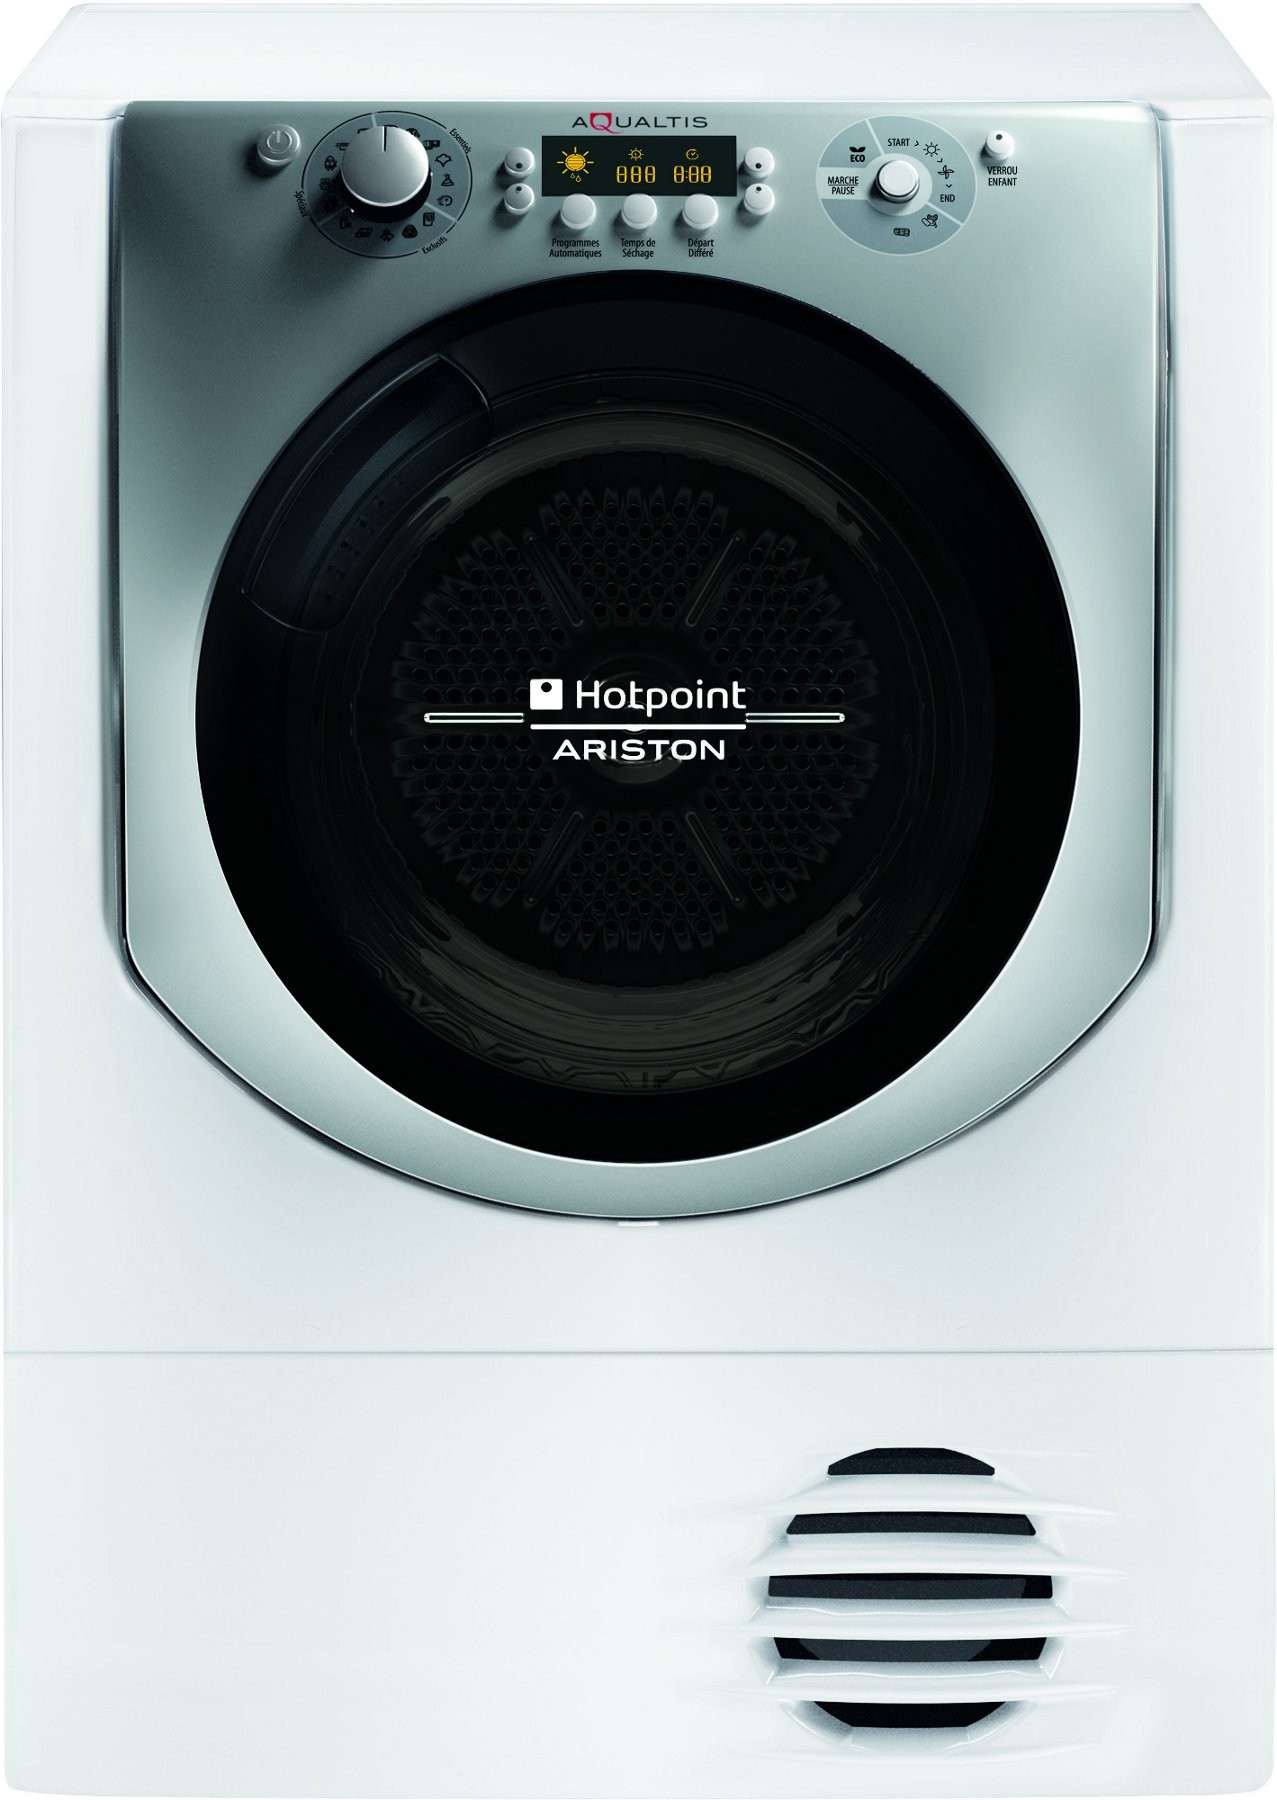 HOTPOINT-ARISTON - AQC 9 BF 5 TZ 1